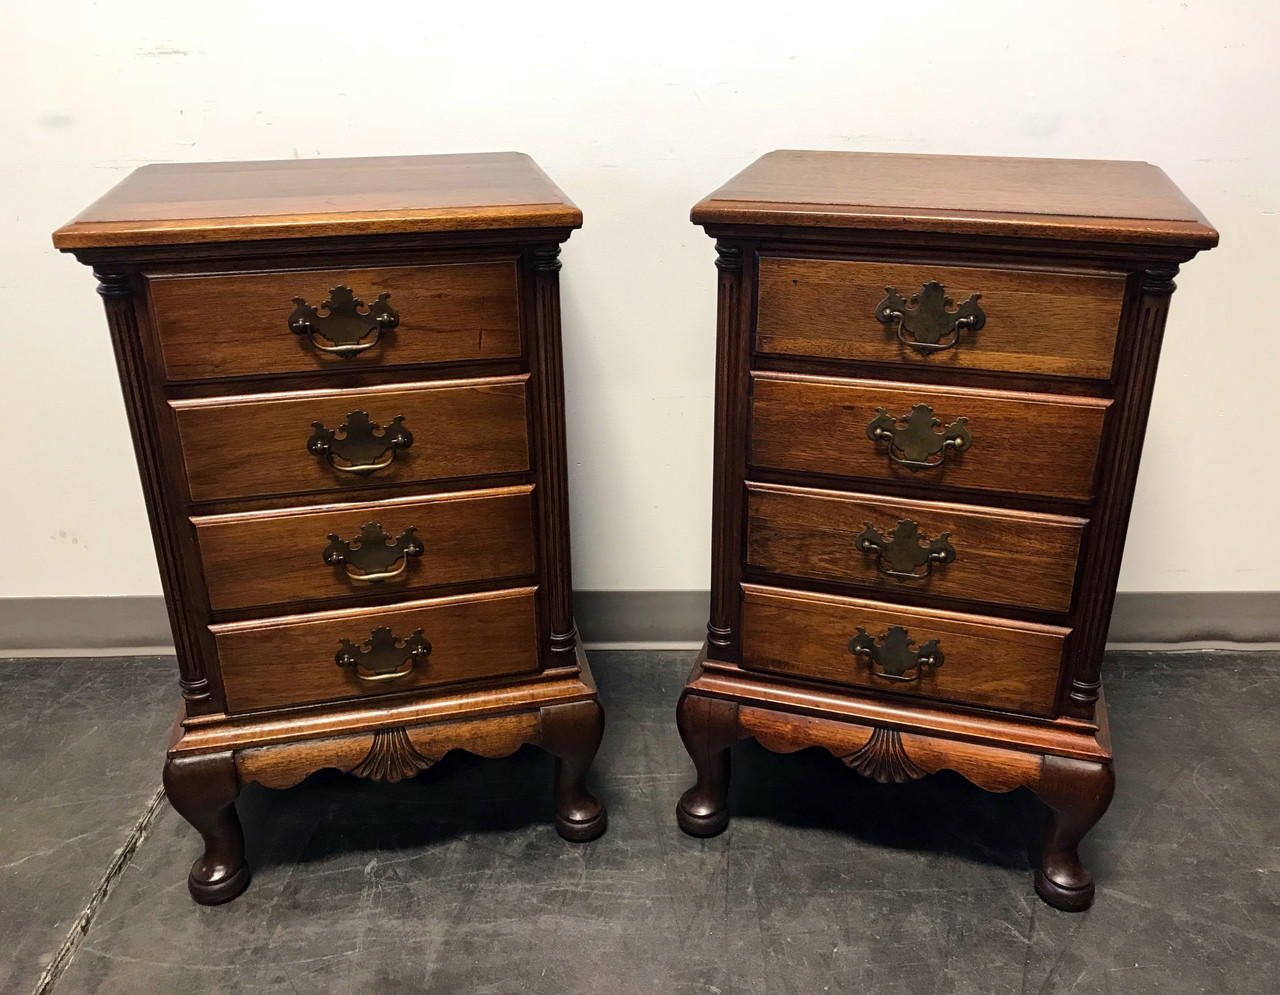 SOLD OUT Solid Mahogany Queen Anne Style Nightstands by